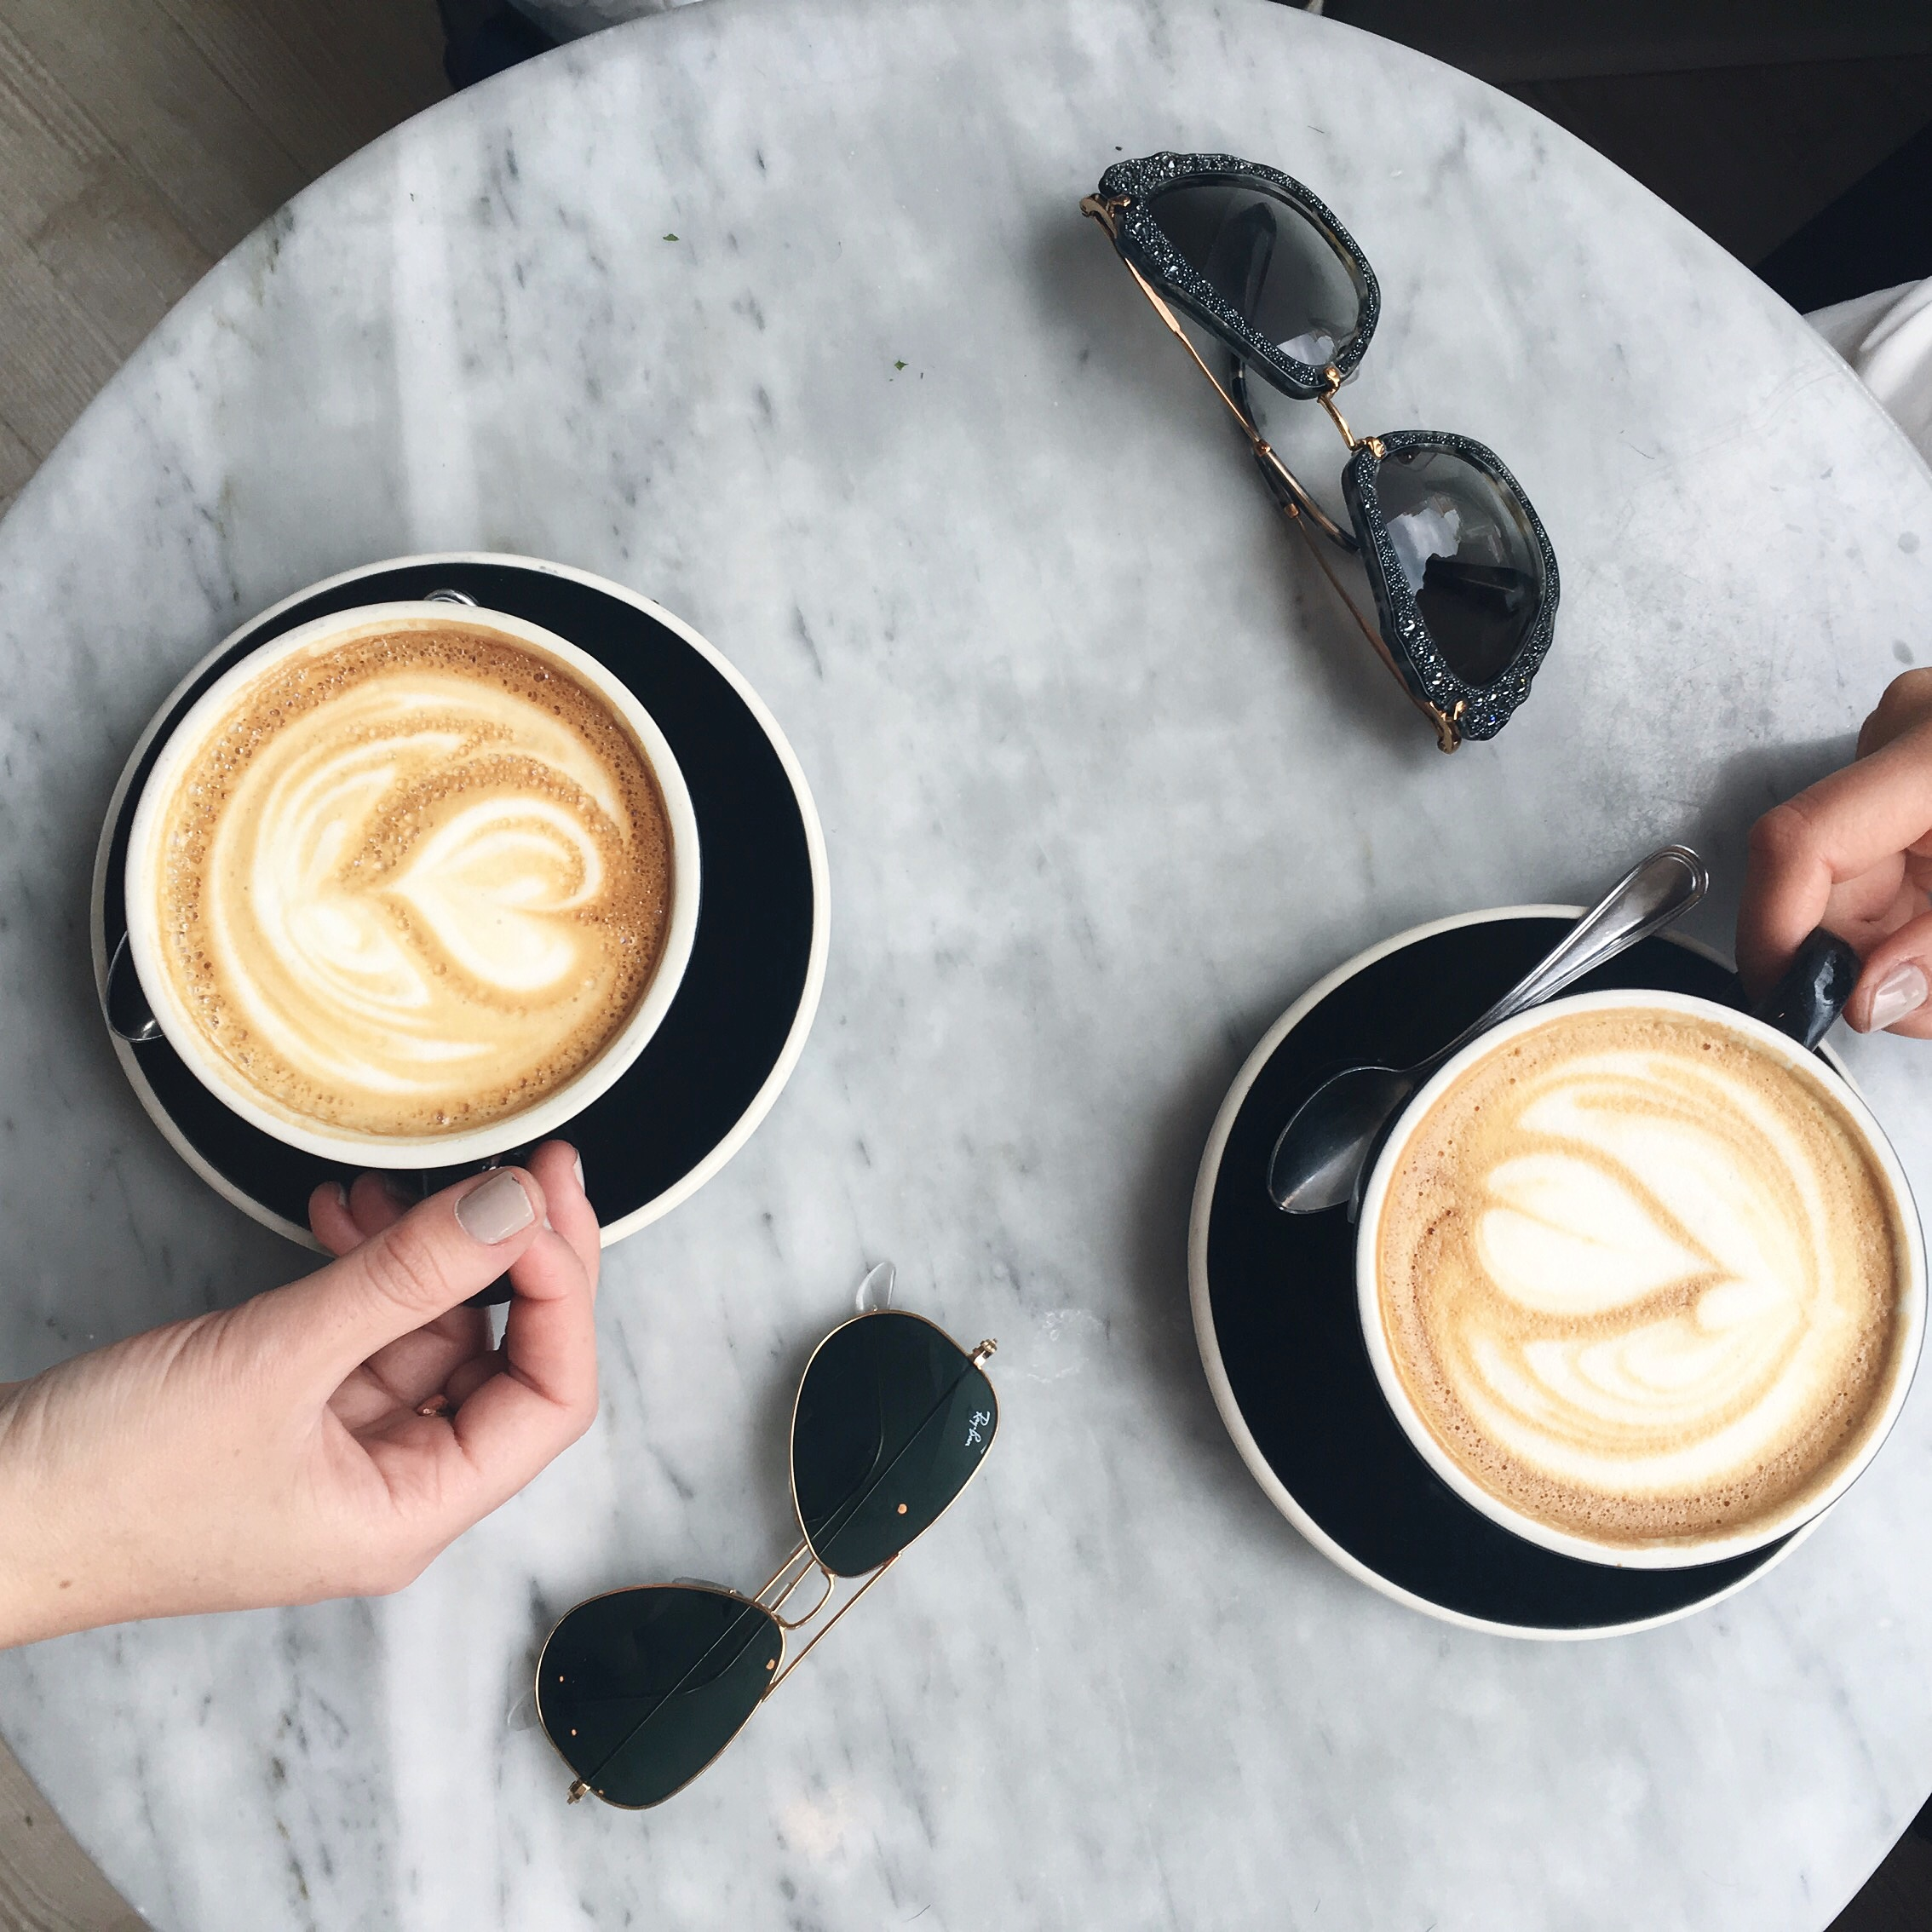 Coffee Talk The 6 Reasons Brands Aren't Reaching Out Louboutins & Love Fashion Blog Esther Santer NYC Street Style Blogger Chalait New York City Latte Art Girls Women Pretty Photography Marble Table Sunglasses Ray-Ban Shop Trend Flatlay Instagram Tips.JPG